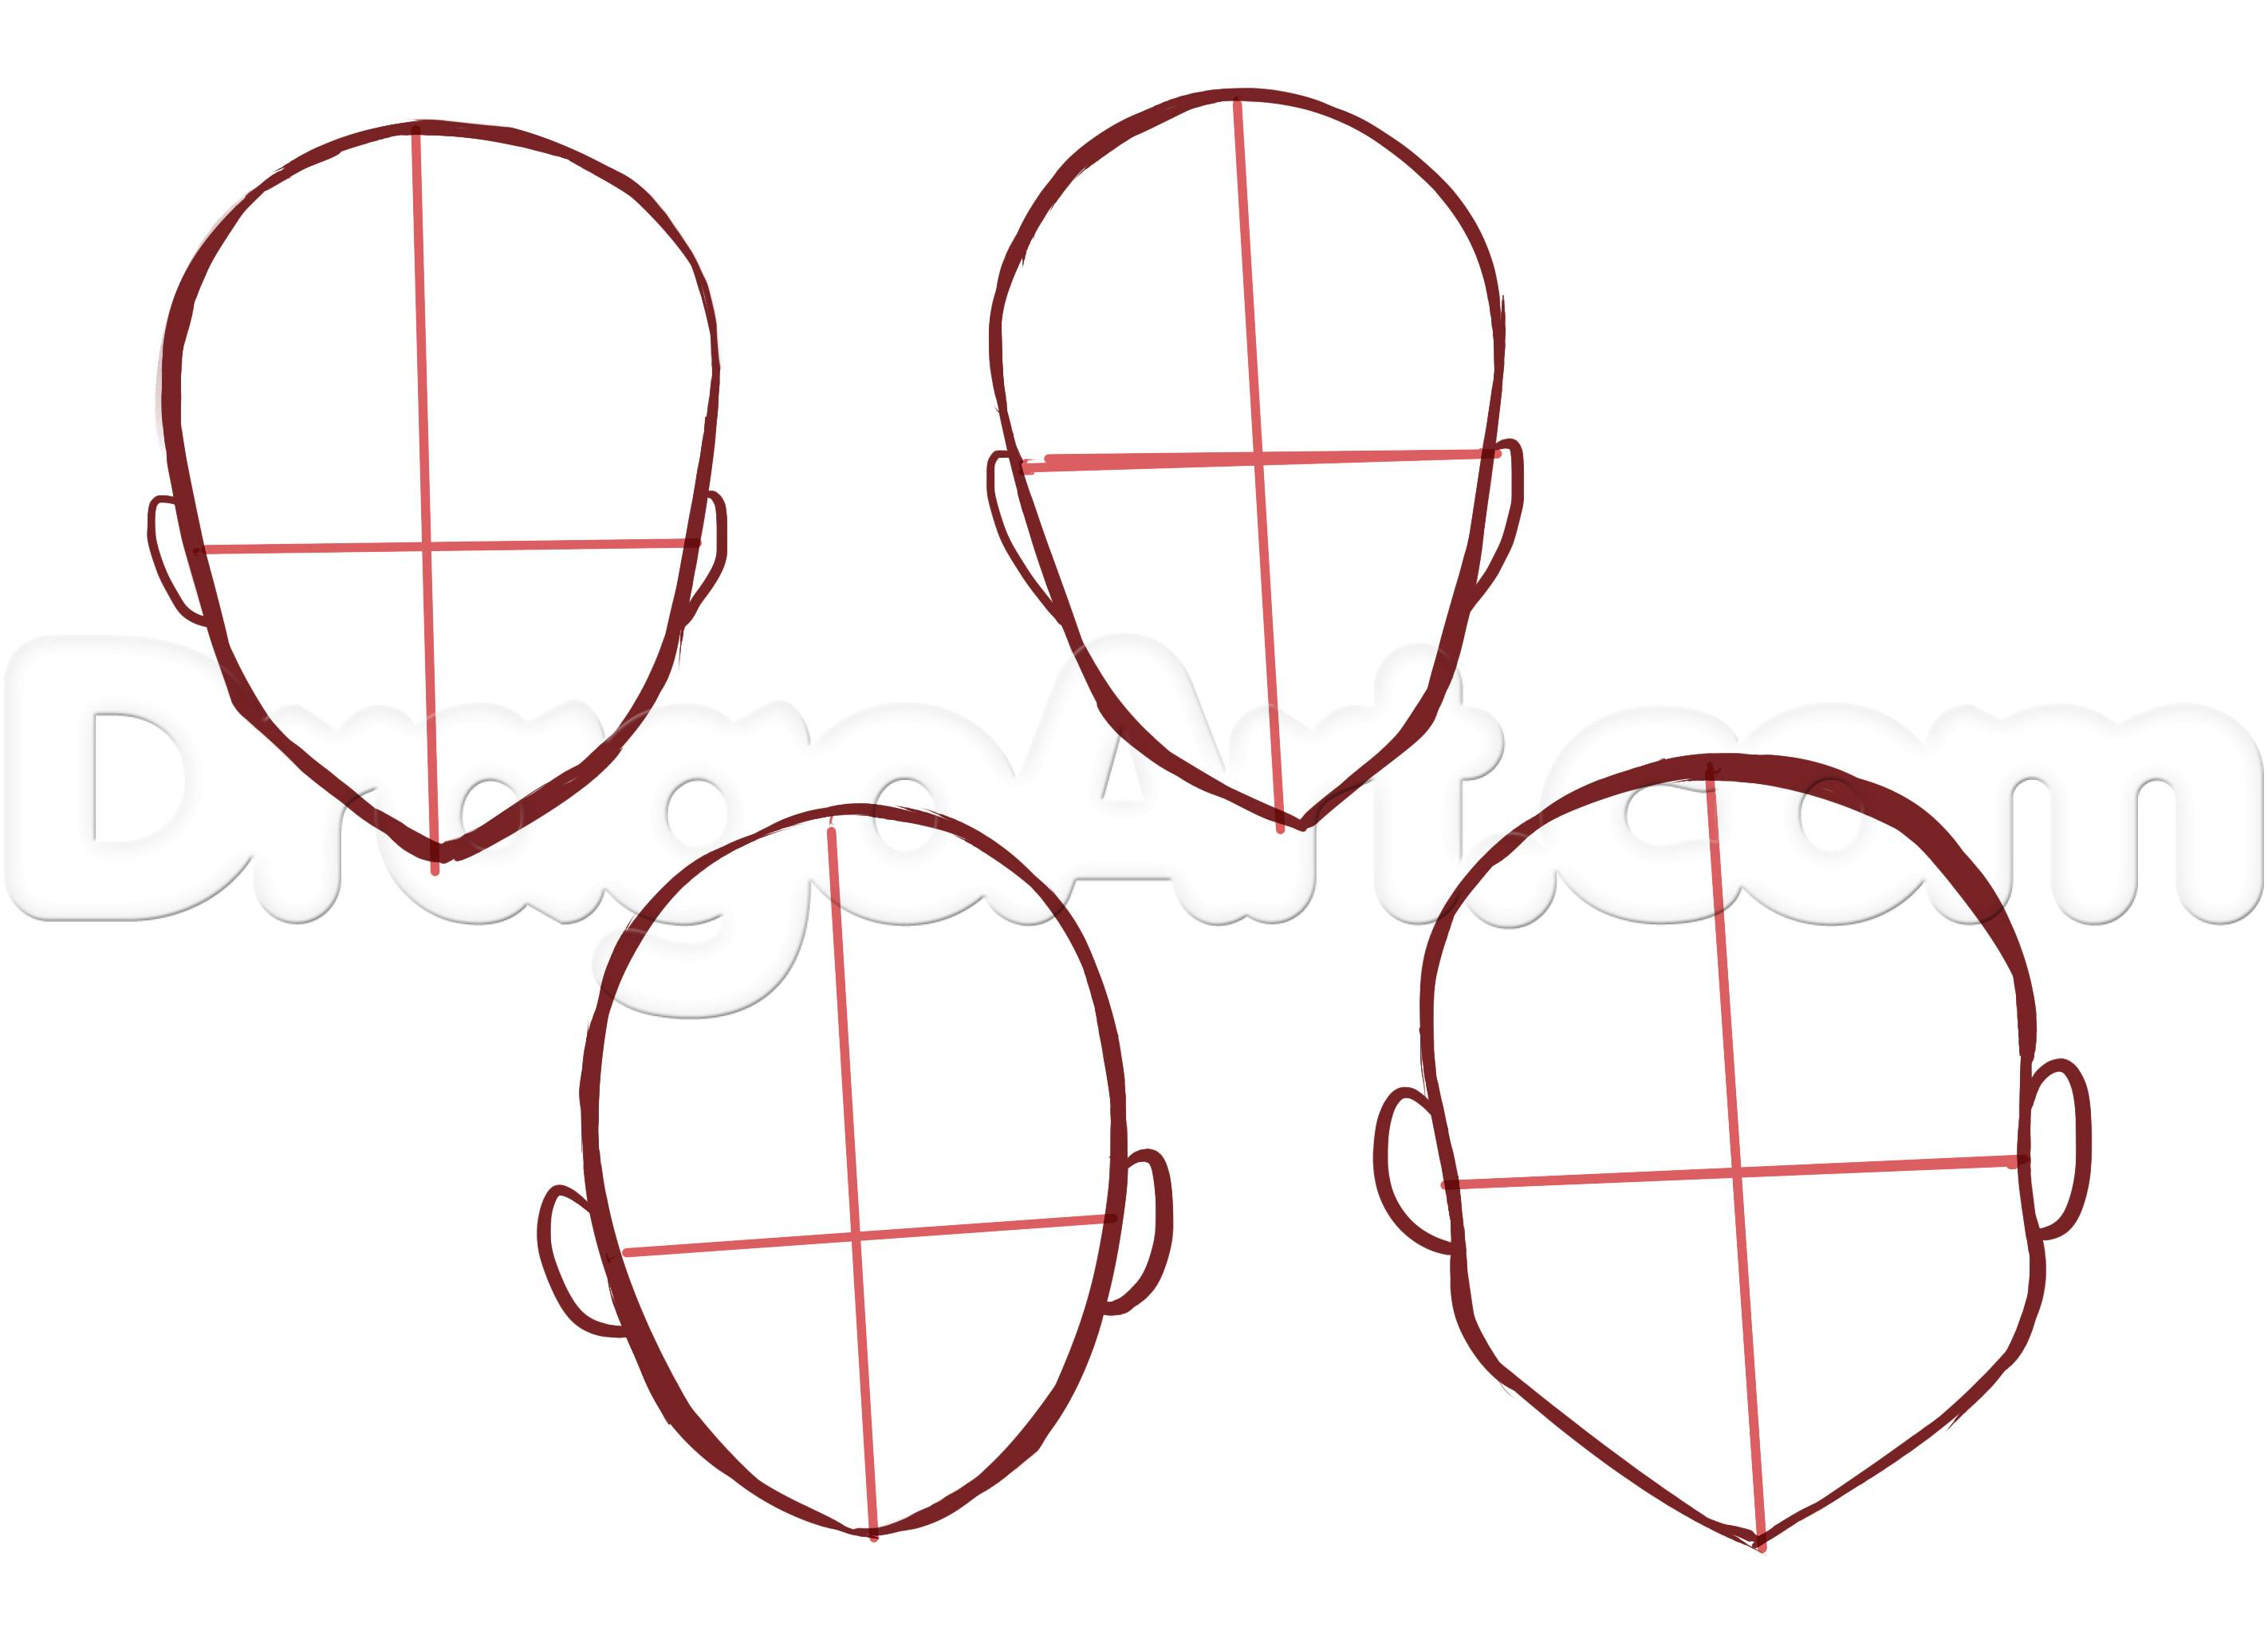 head shape drawing 57 head shape drawing at getdrawings com free for personal use head